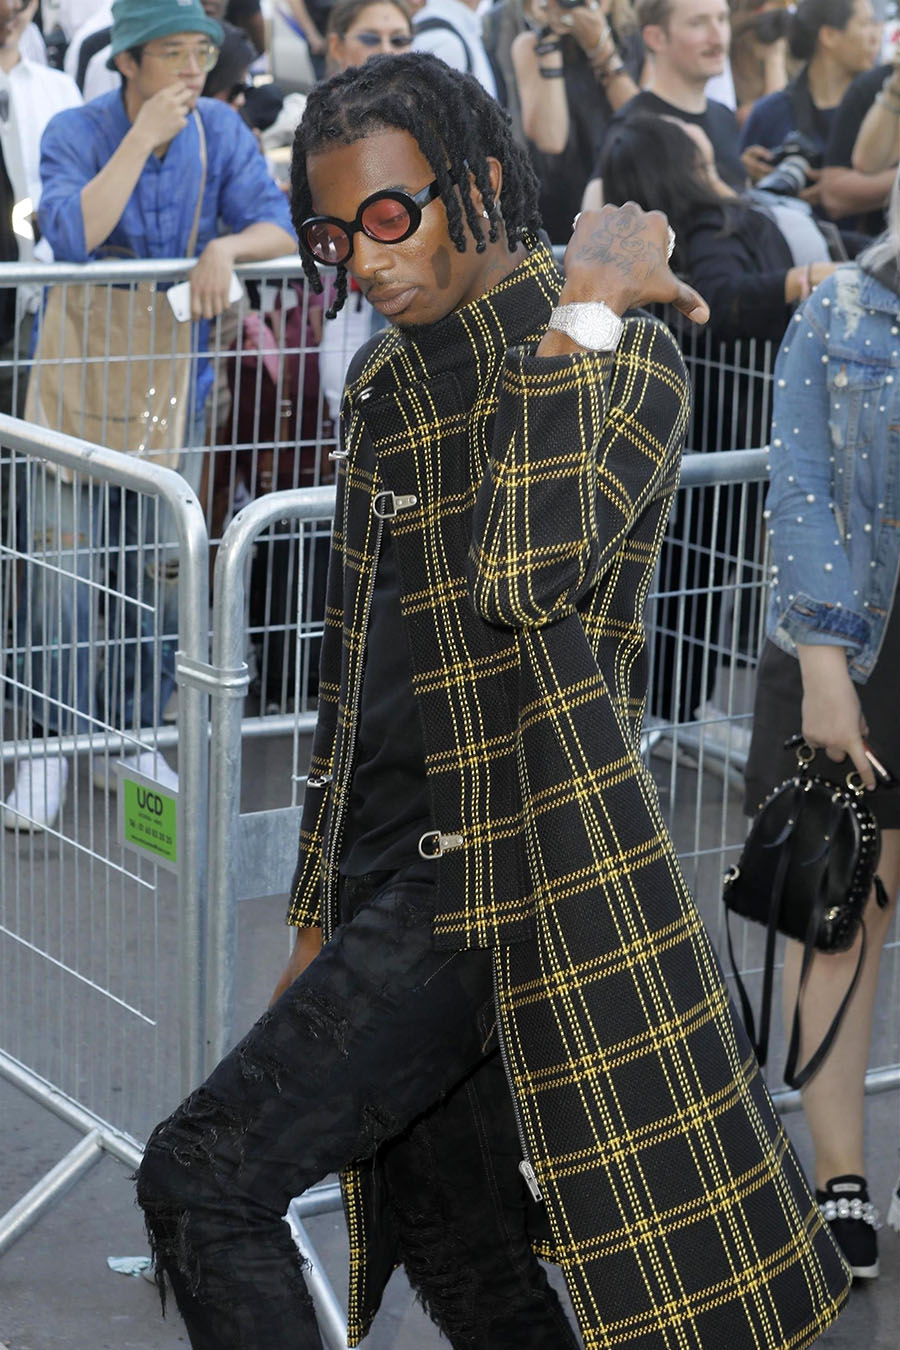 Rapper Playboi Carti arrive at the OffWhite Menswear runway show in ParisPhoto by Best Image